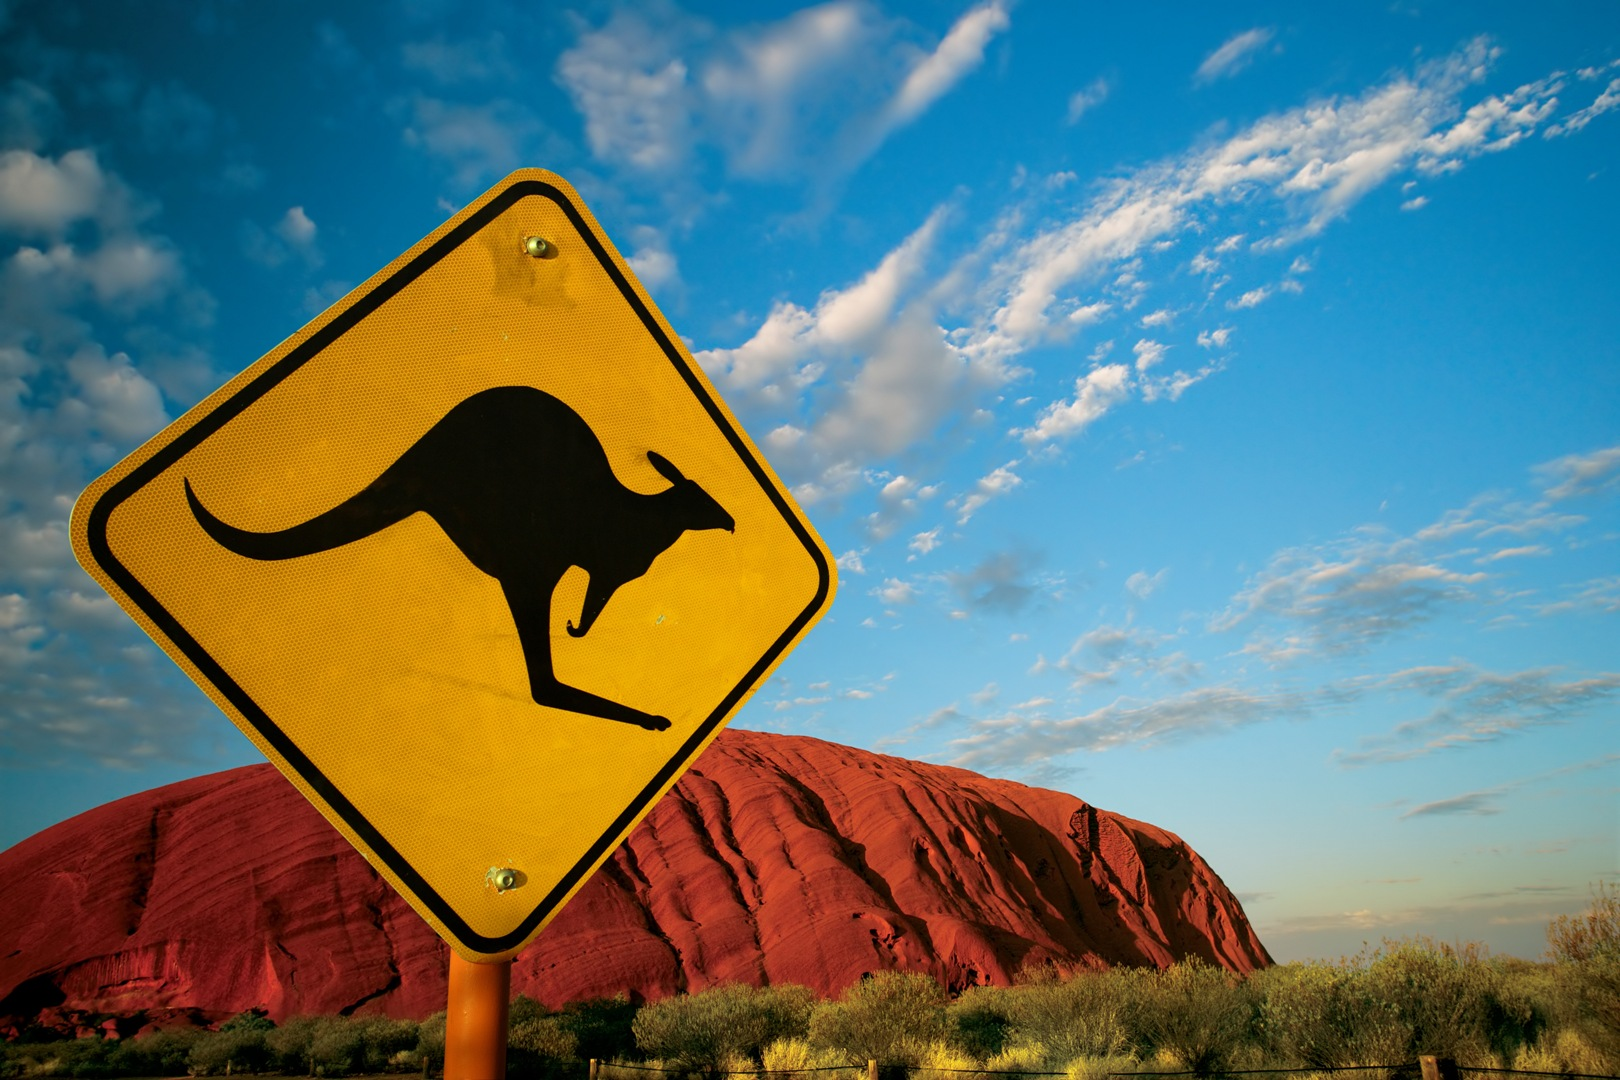 Kangaroo Crossing at Uluru